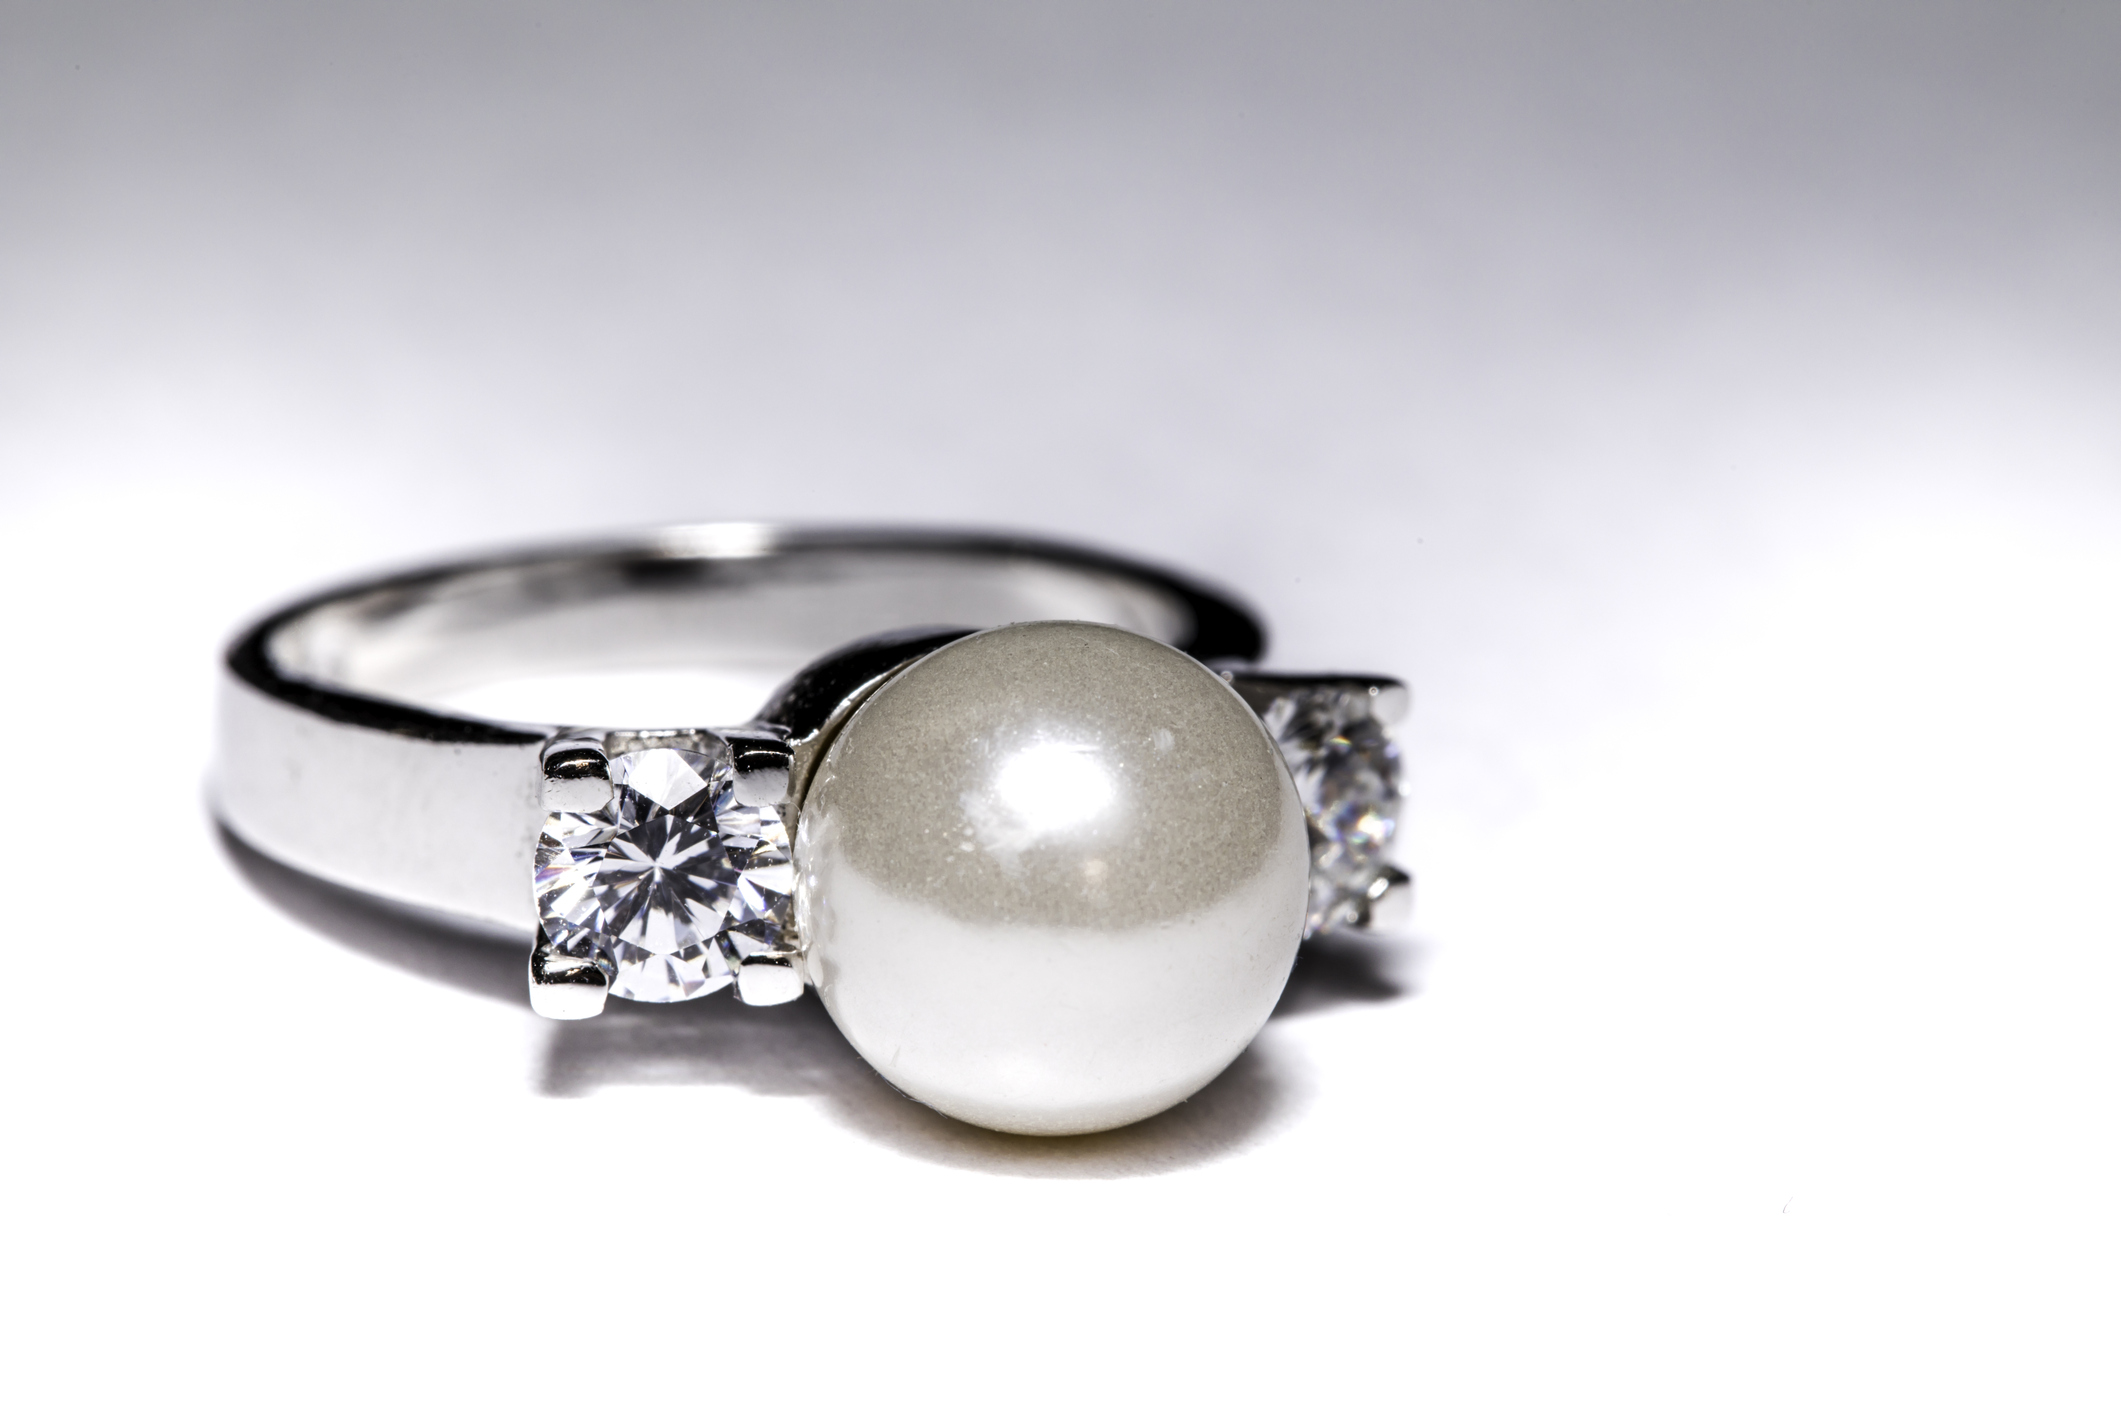 pearls floral top timeless rings ring category jewelry buy shell product engagement rated type real pearl